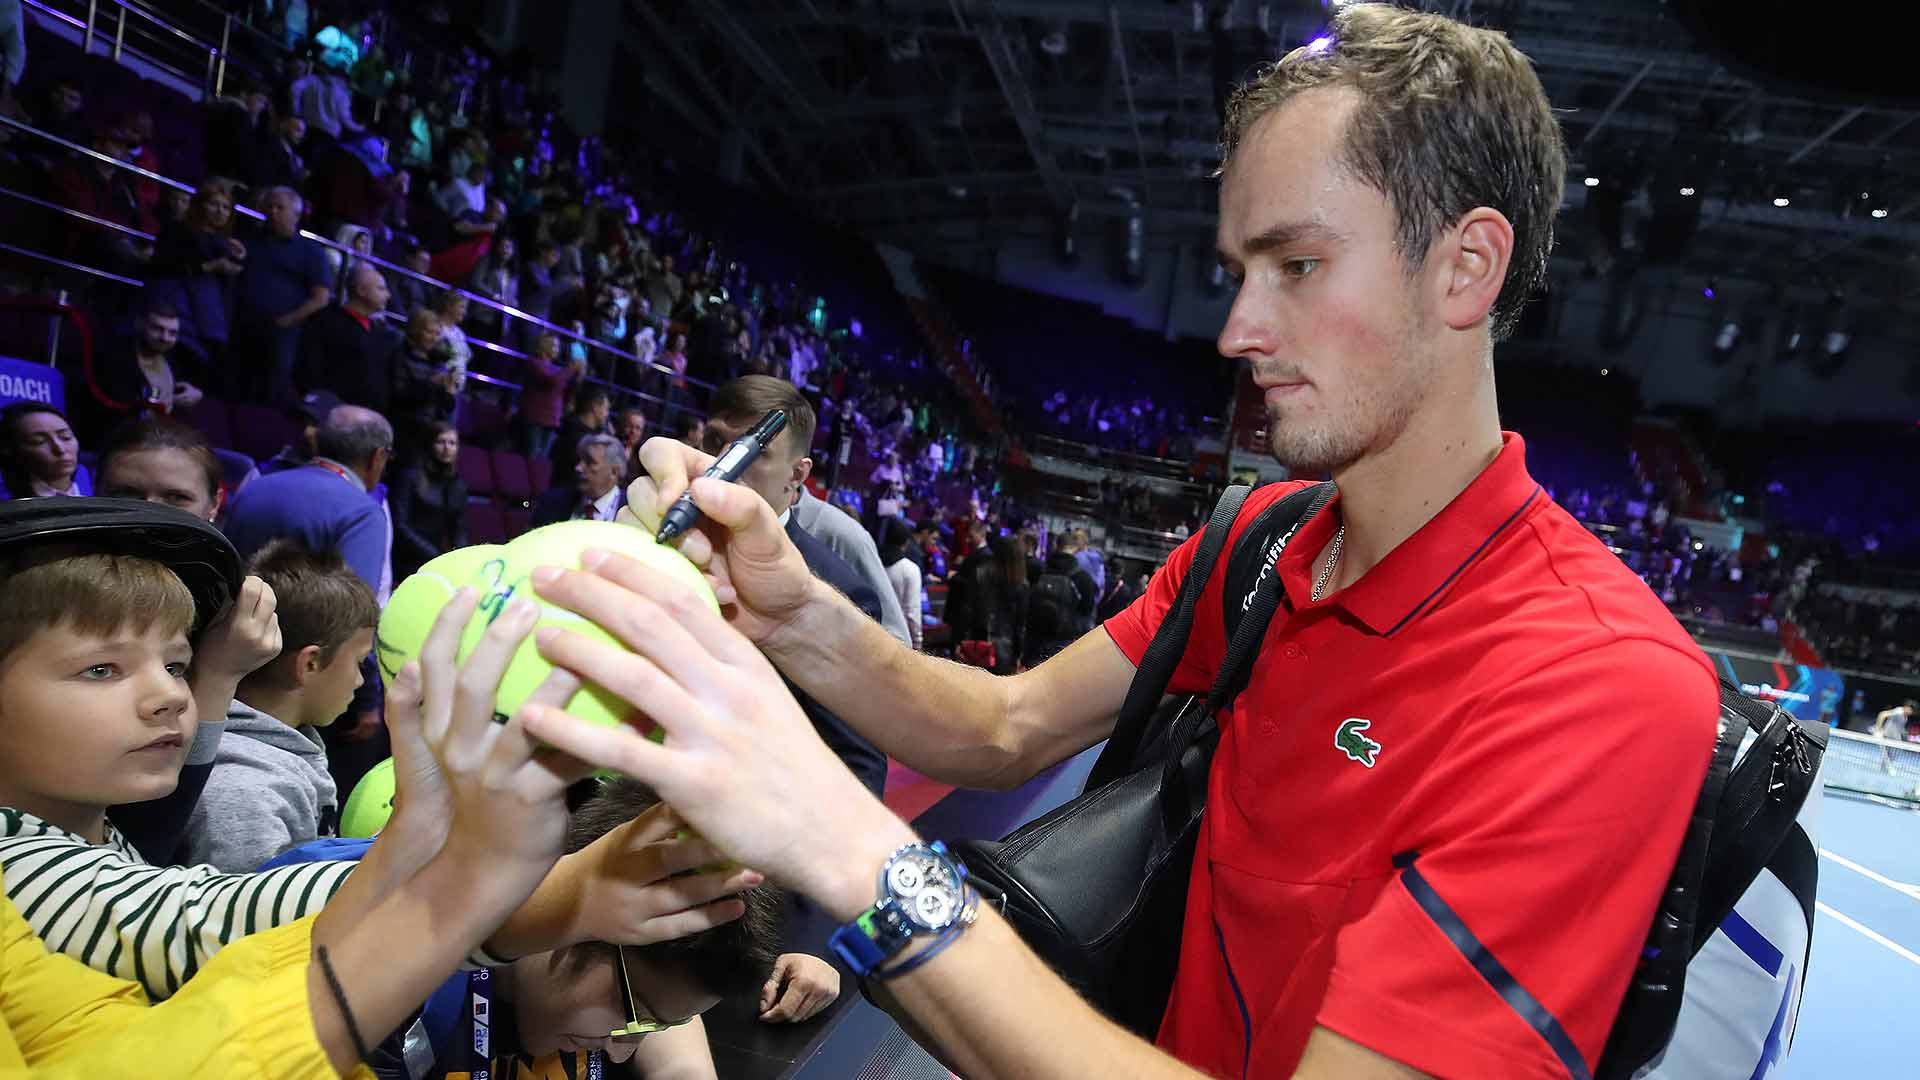 Daniil Medvedev beats Andrey Rublev on Friday at the St. Petersburg Open in Russia